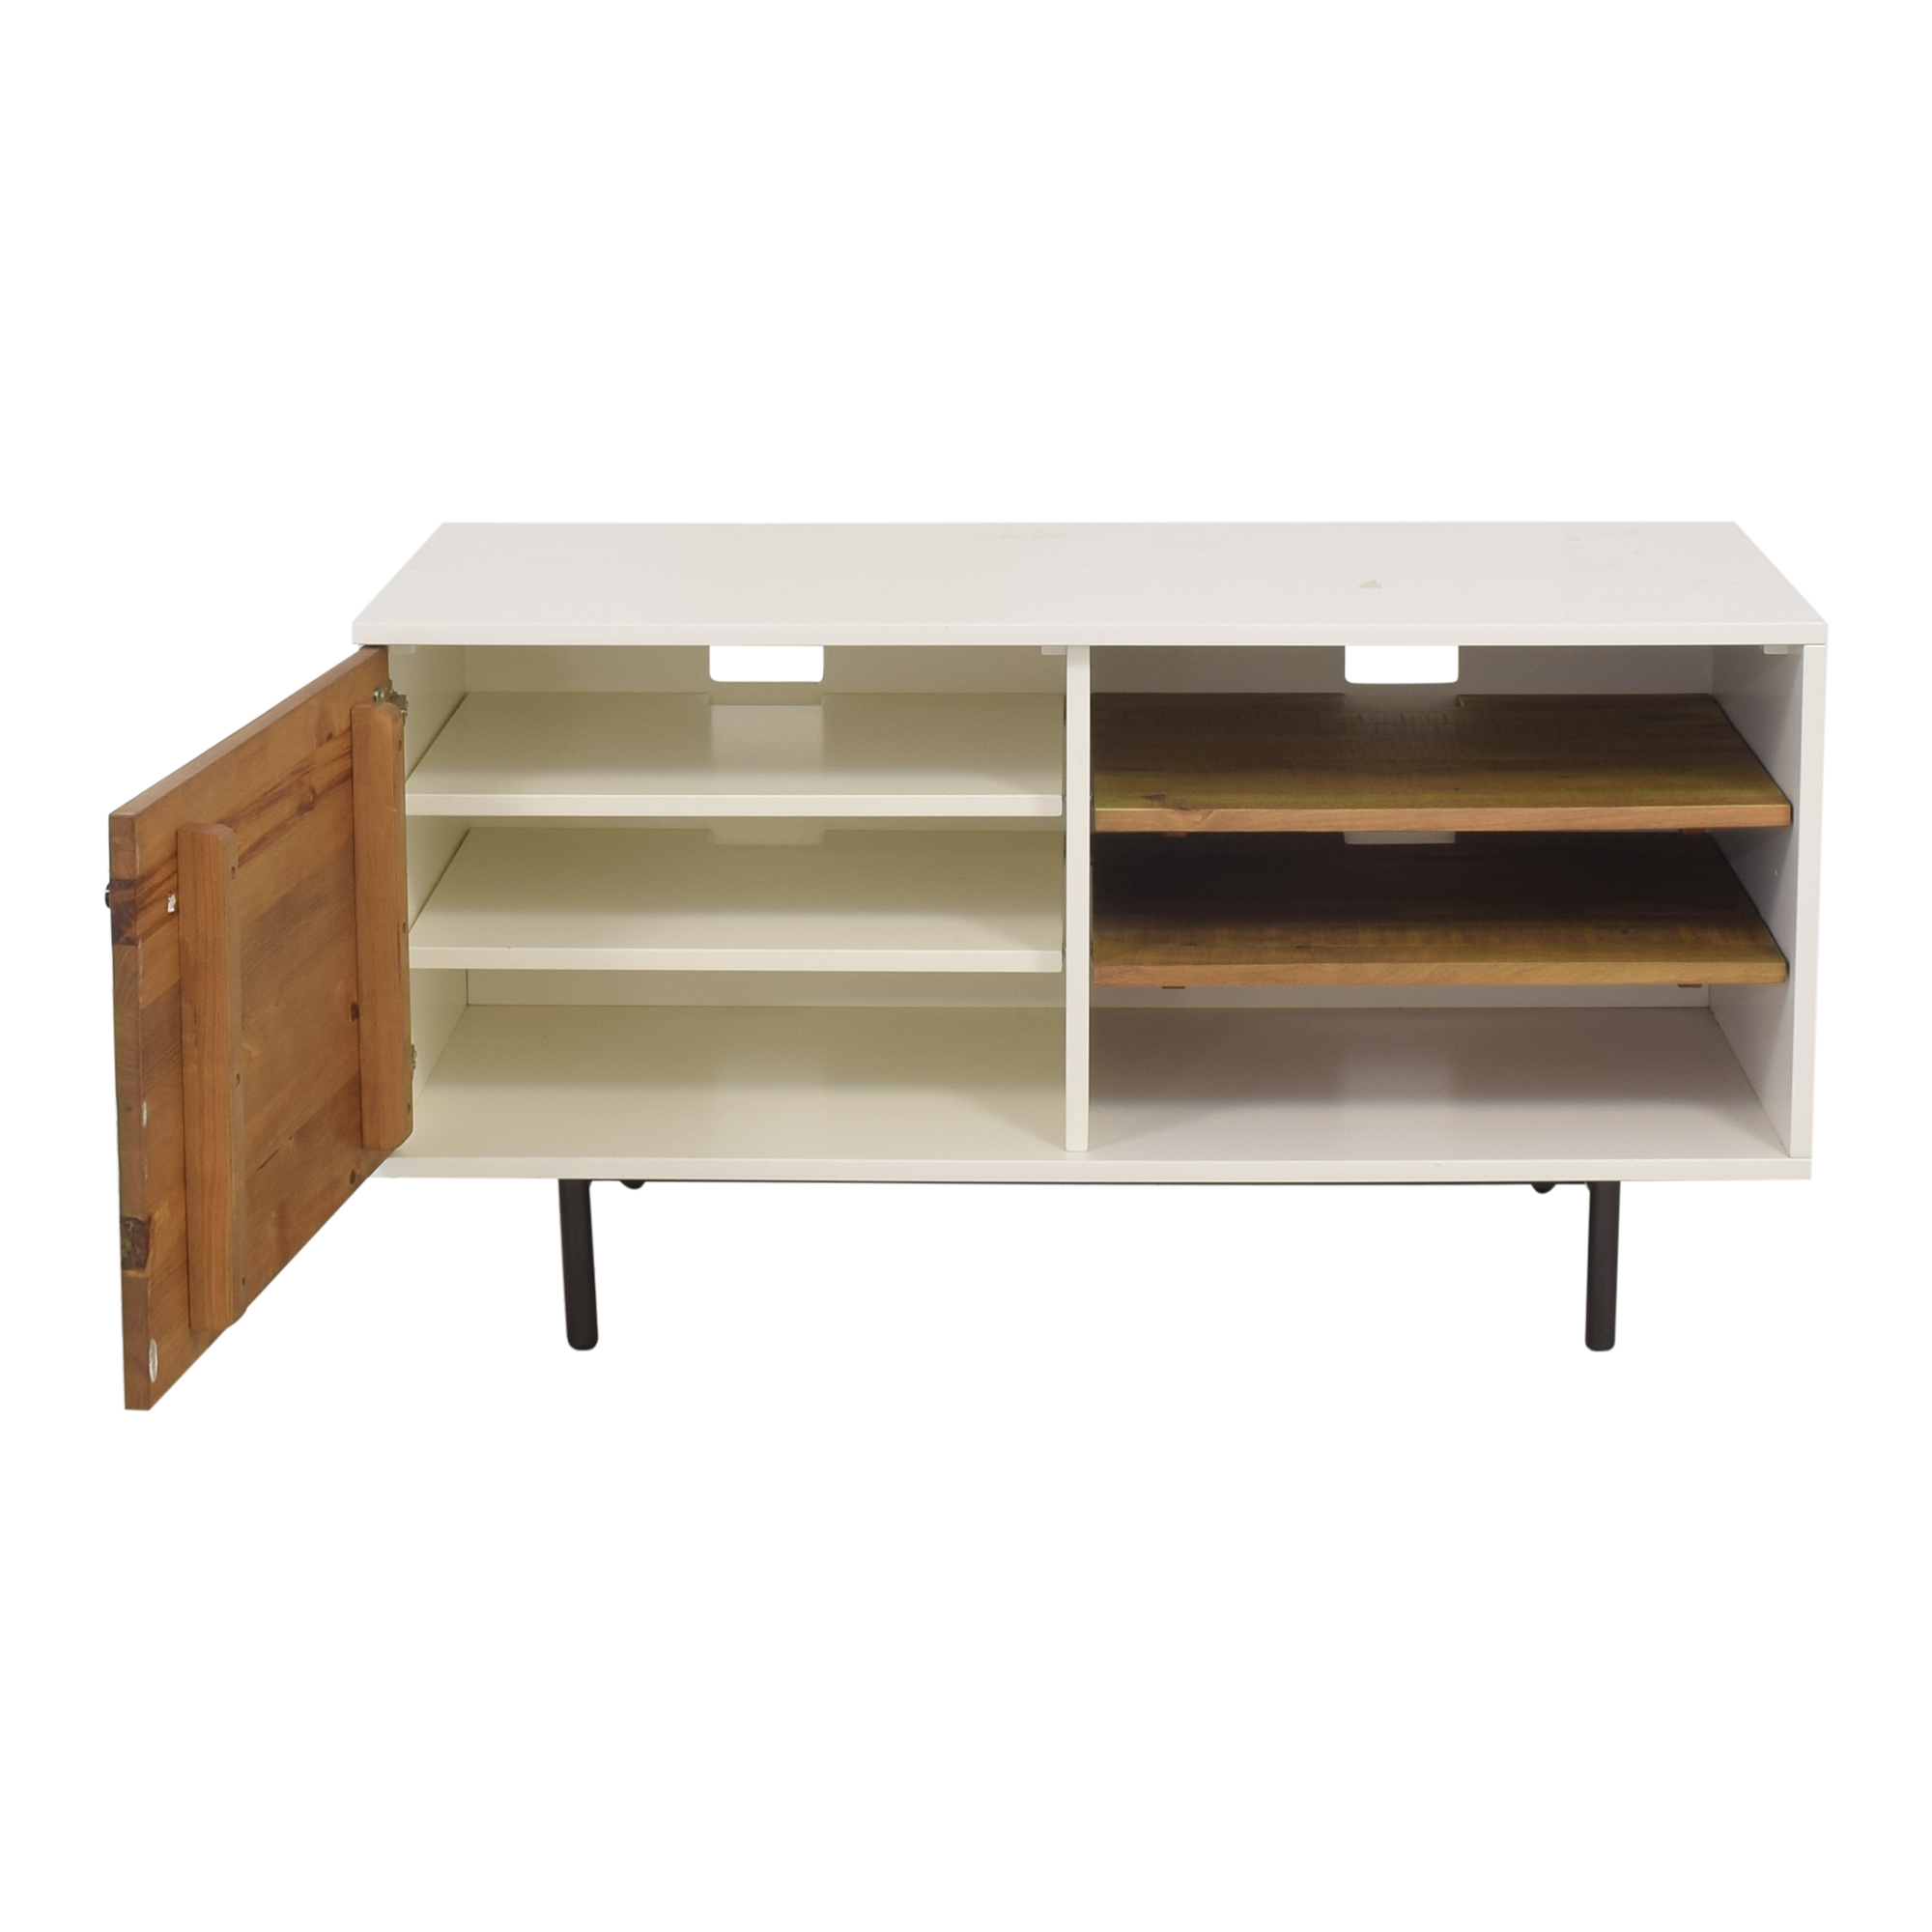 West Elm West Elm Reclaimed Media Console dimensions